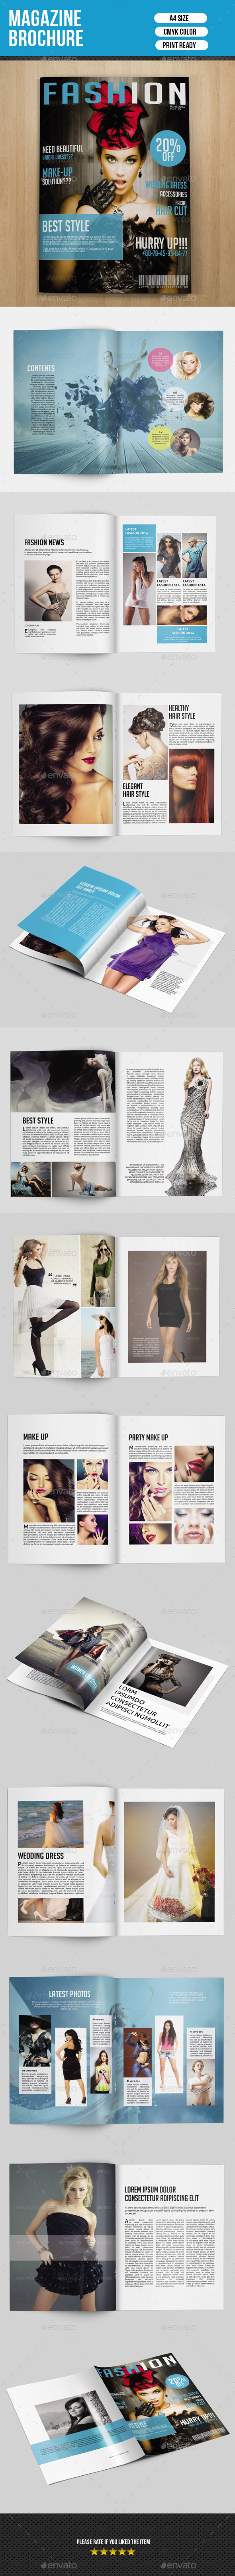 GraphicRiver Fashion Magazine Template-V02 9326759